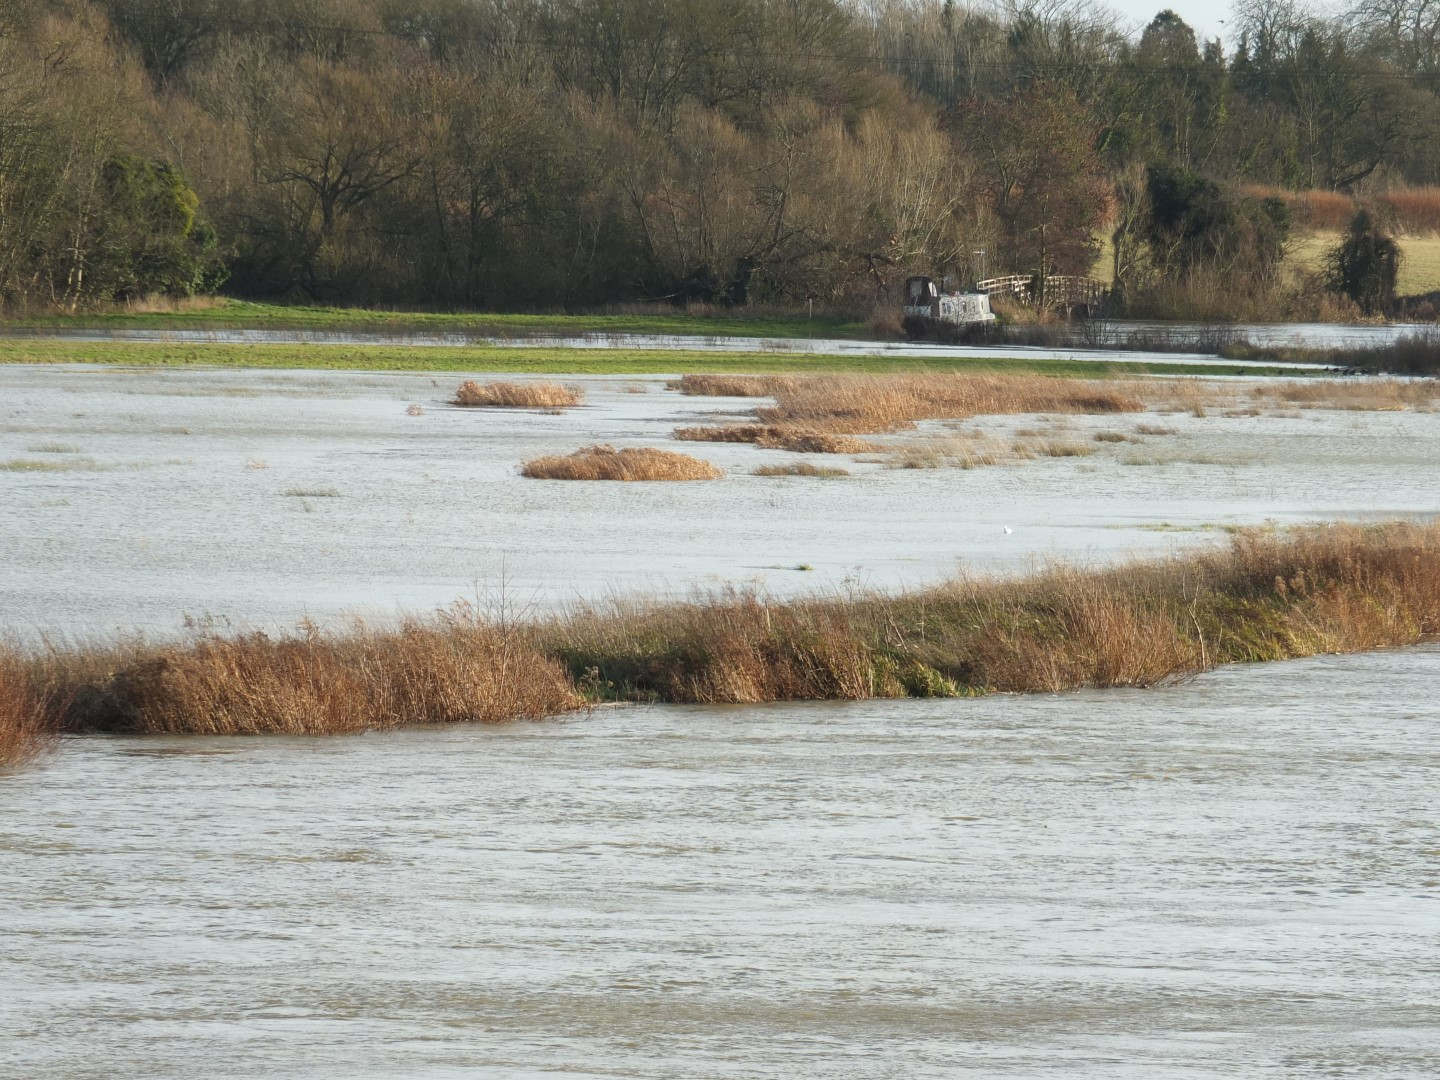 Floodplains and flood defences